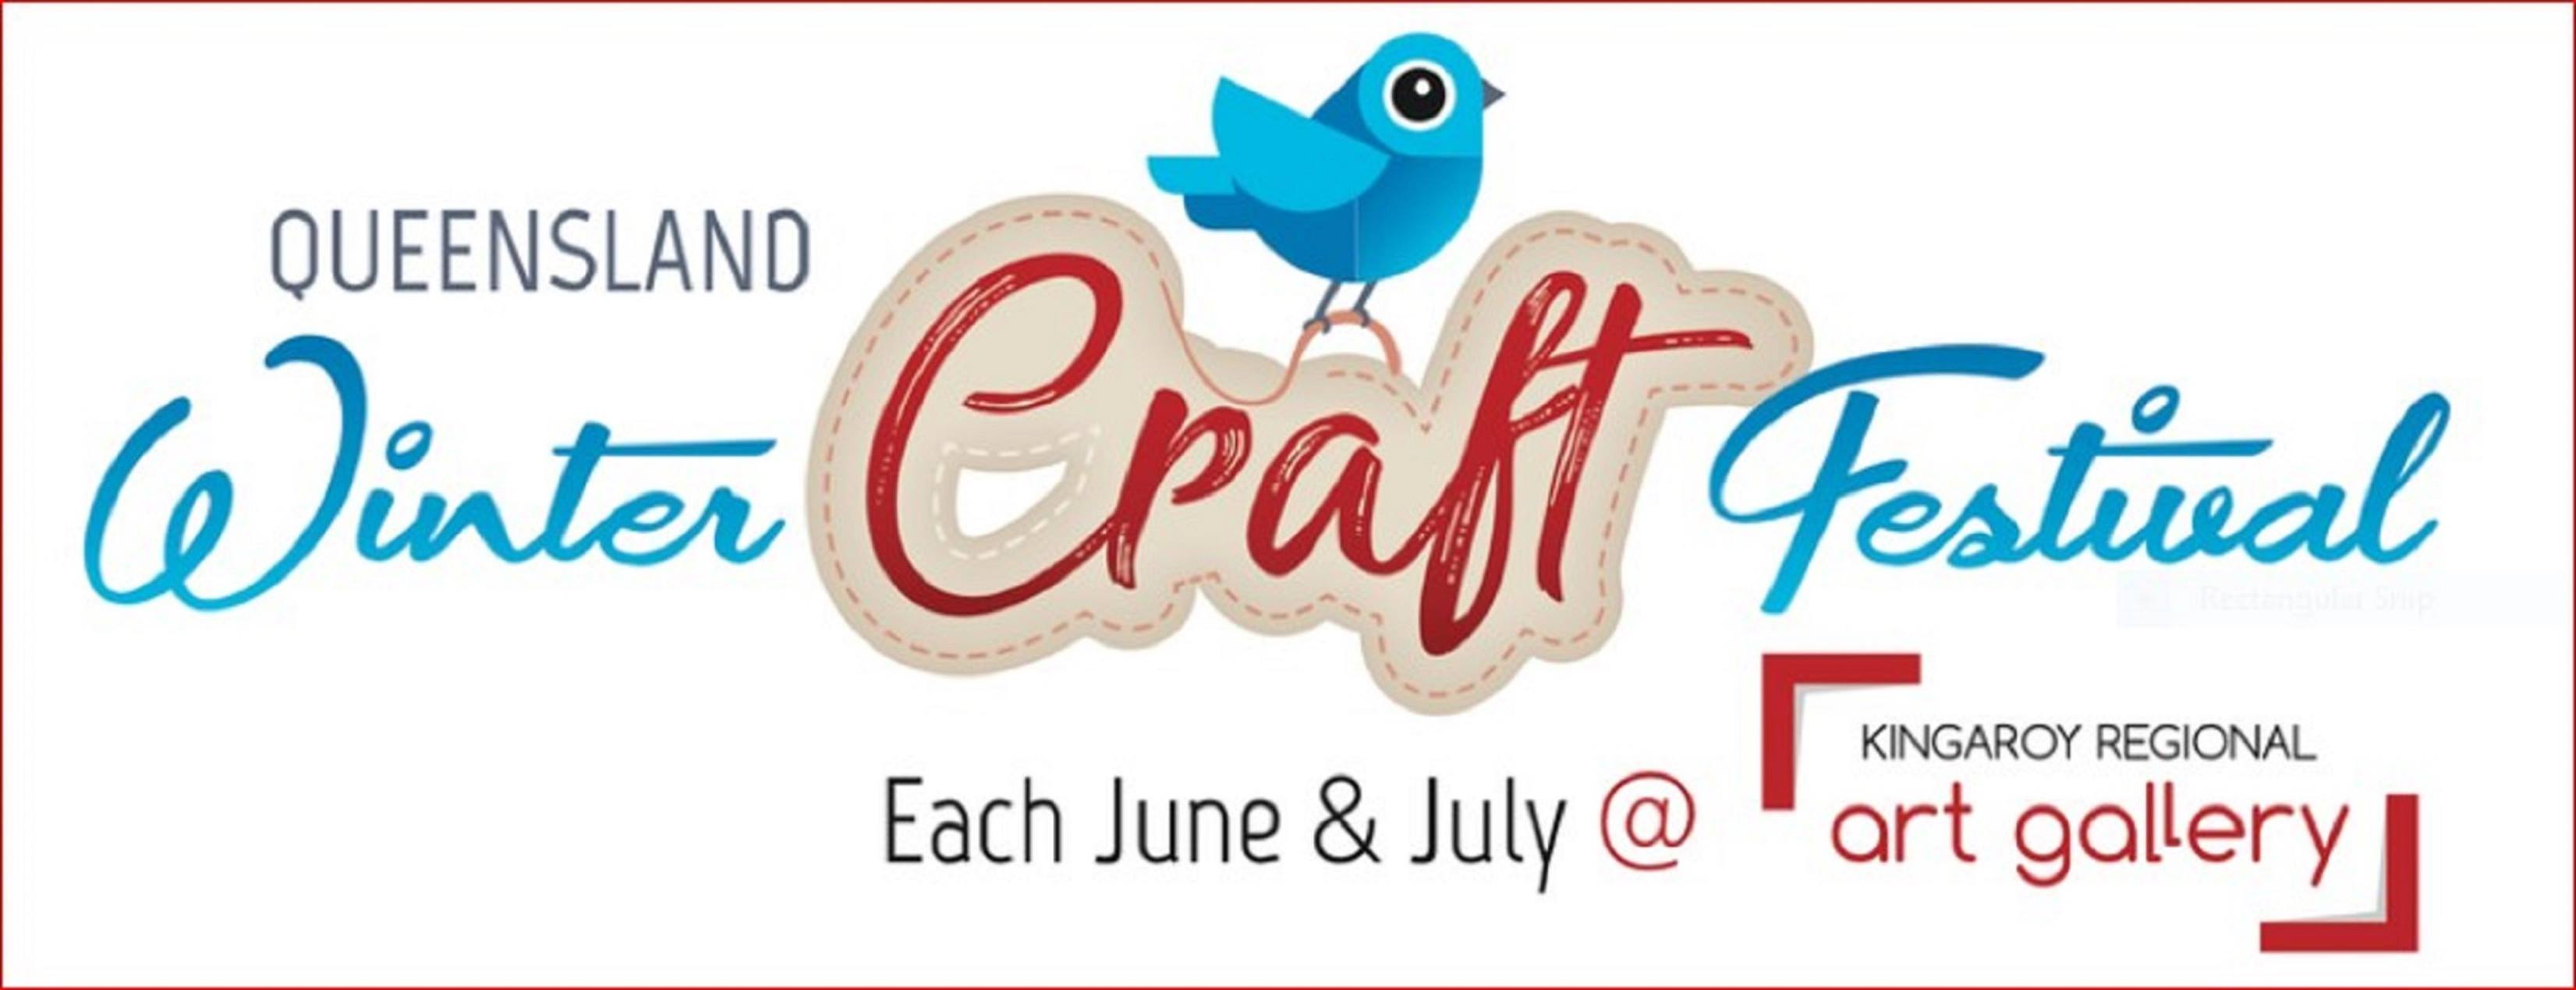 Annual Winter Craft Festival - June & July